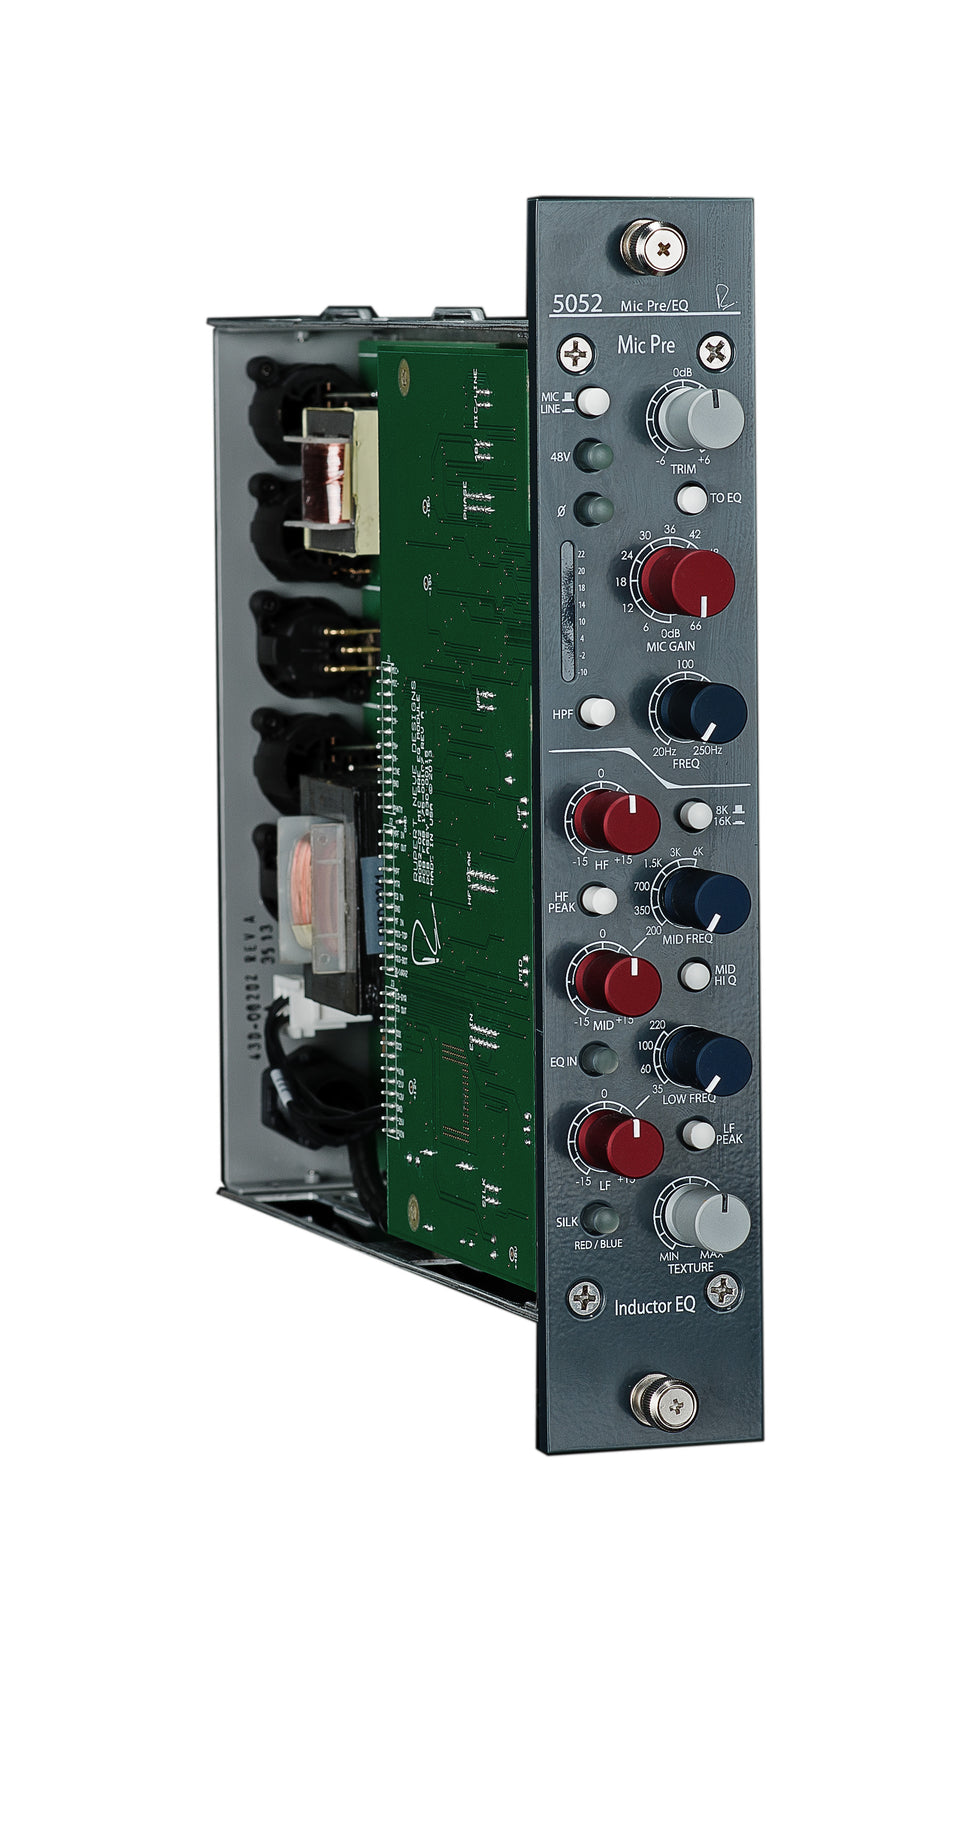 Rupert Neve Designs Shelford 5052 Mic Pre / Inductor EQ